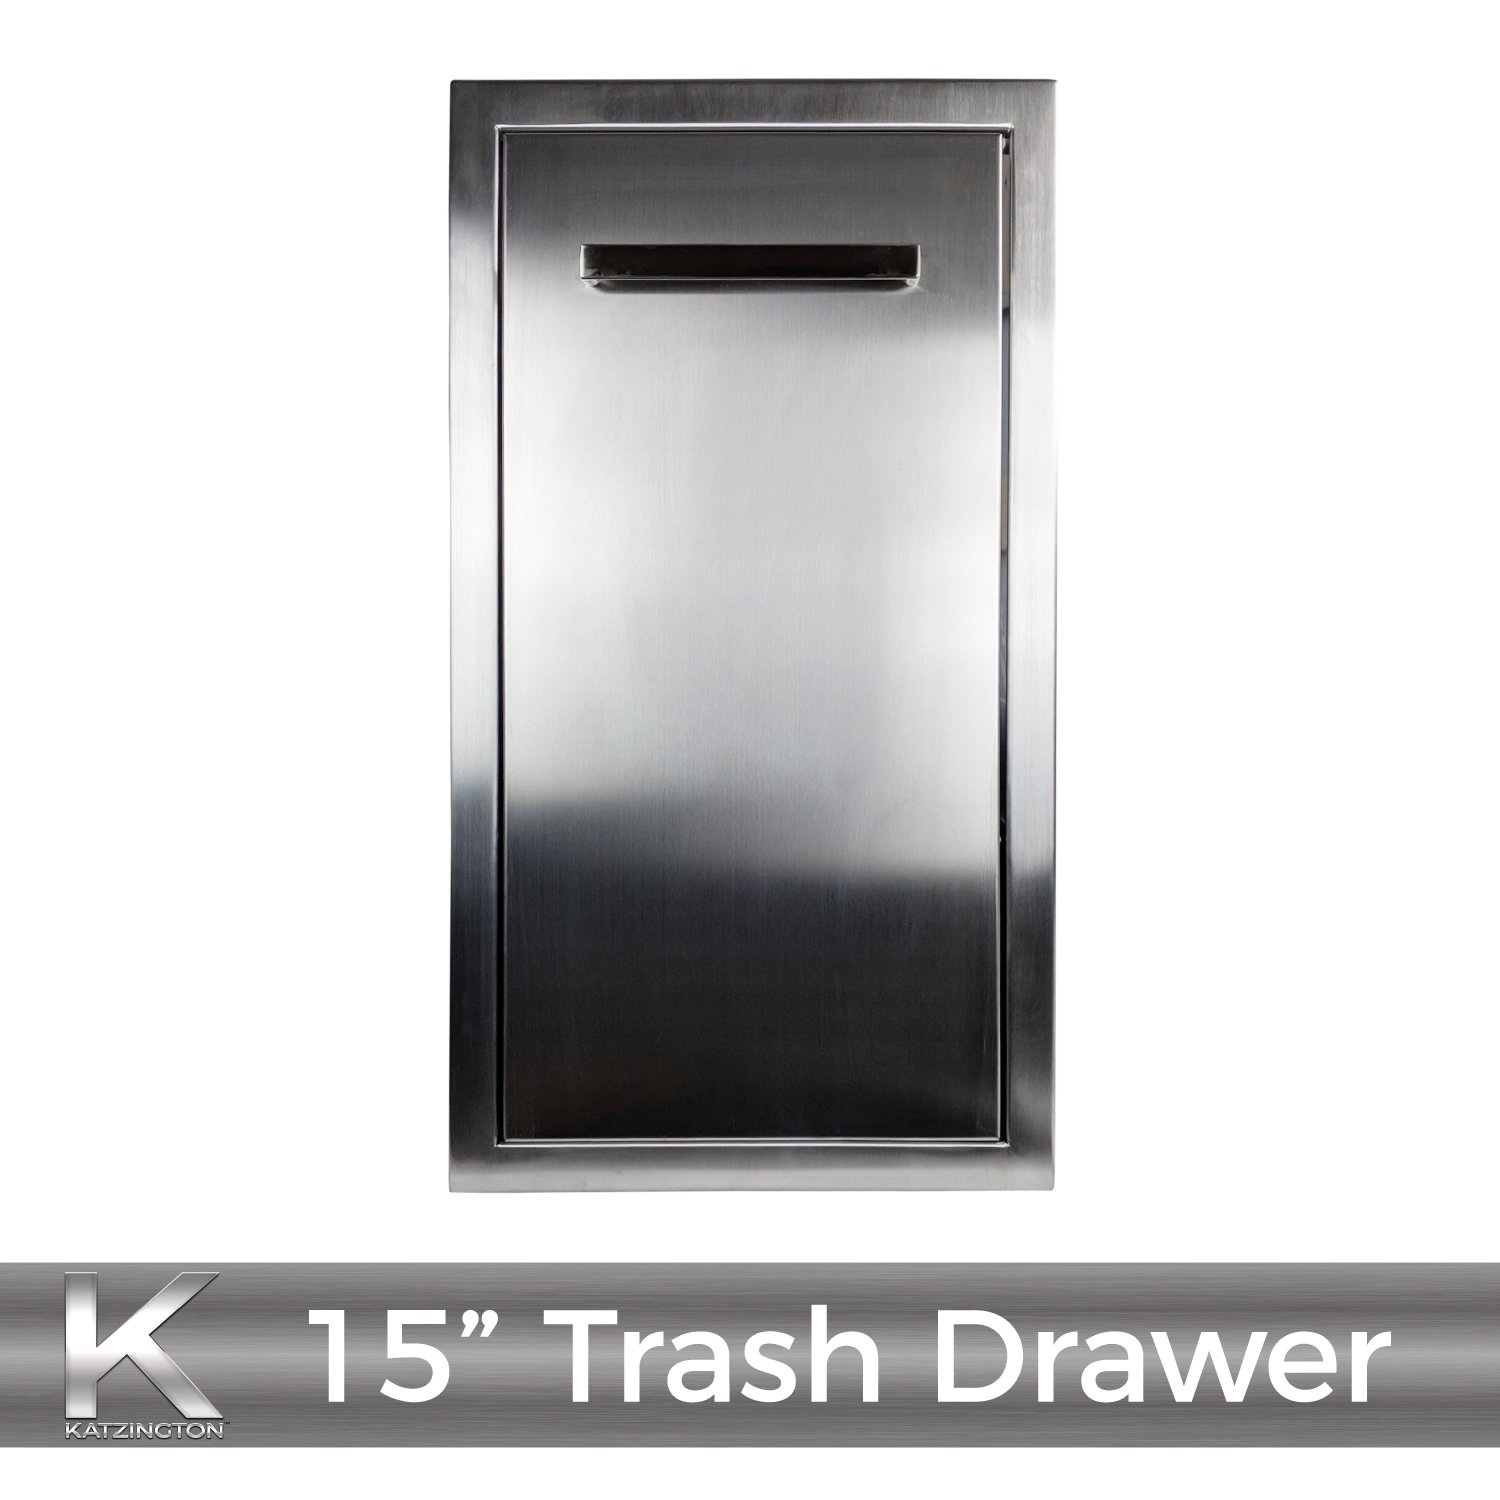 Katzington BBQ ISLAND TRASH DRAWER - Modern Style - 15'' Trash Drawer - 304 Grade Stainless Steel - Double Walled Construction - Barbecue Island/Outdoor Kitchen Access Door - Soft Close Drawer Glides by Katzington (Image #8)